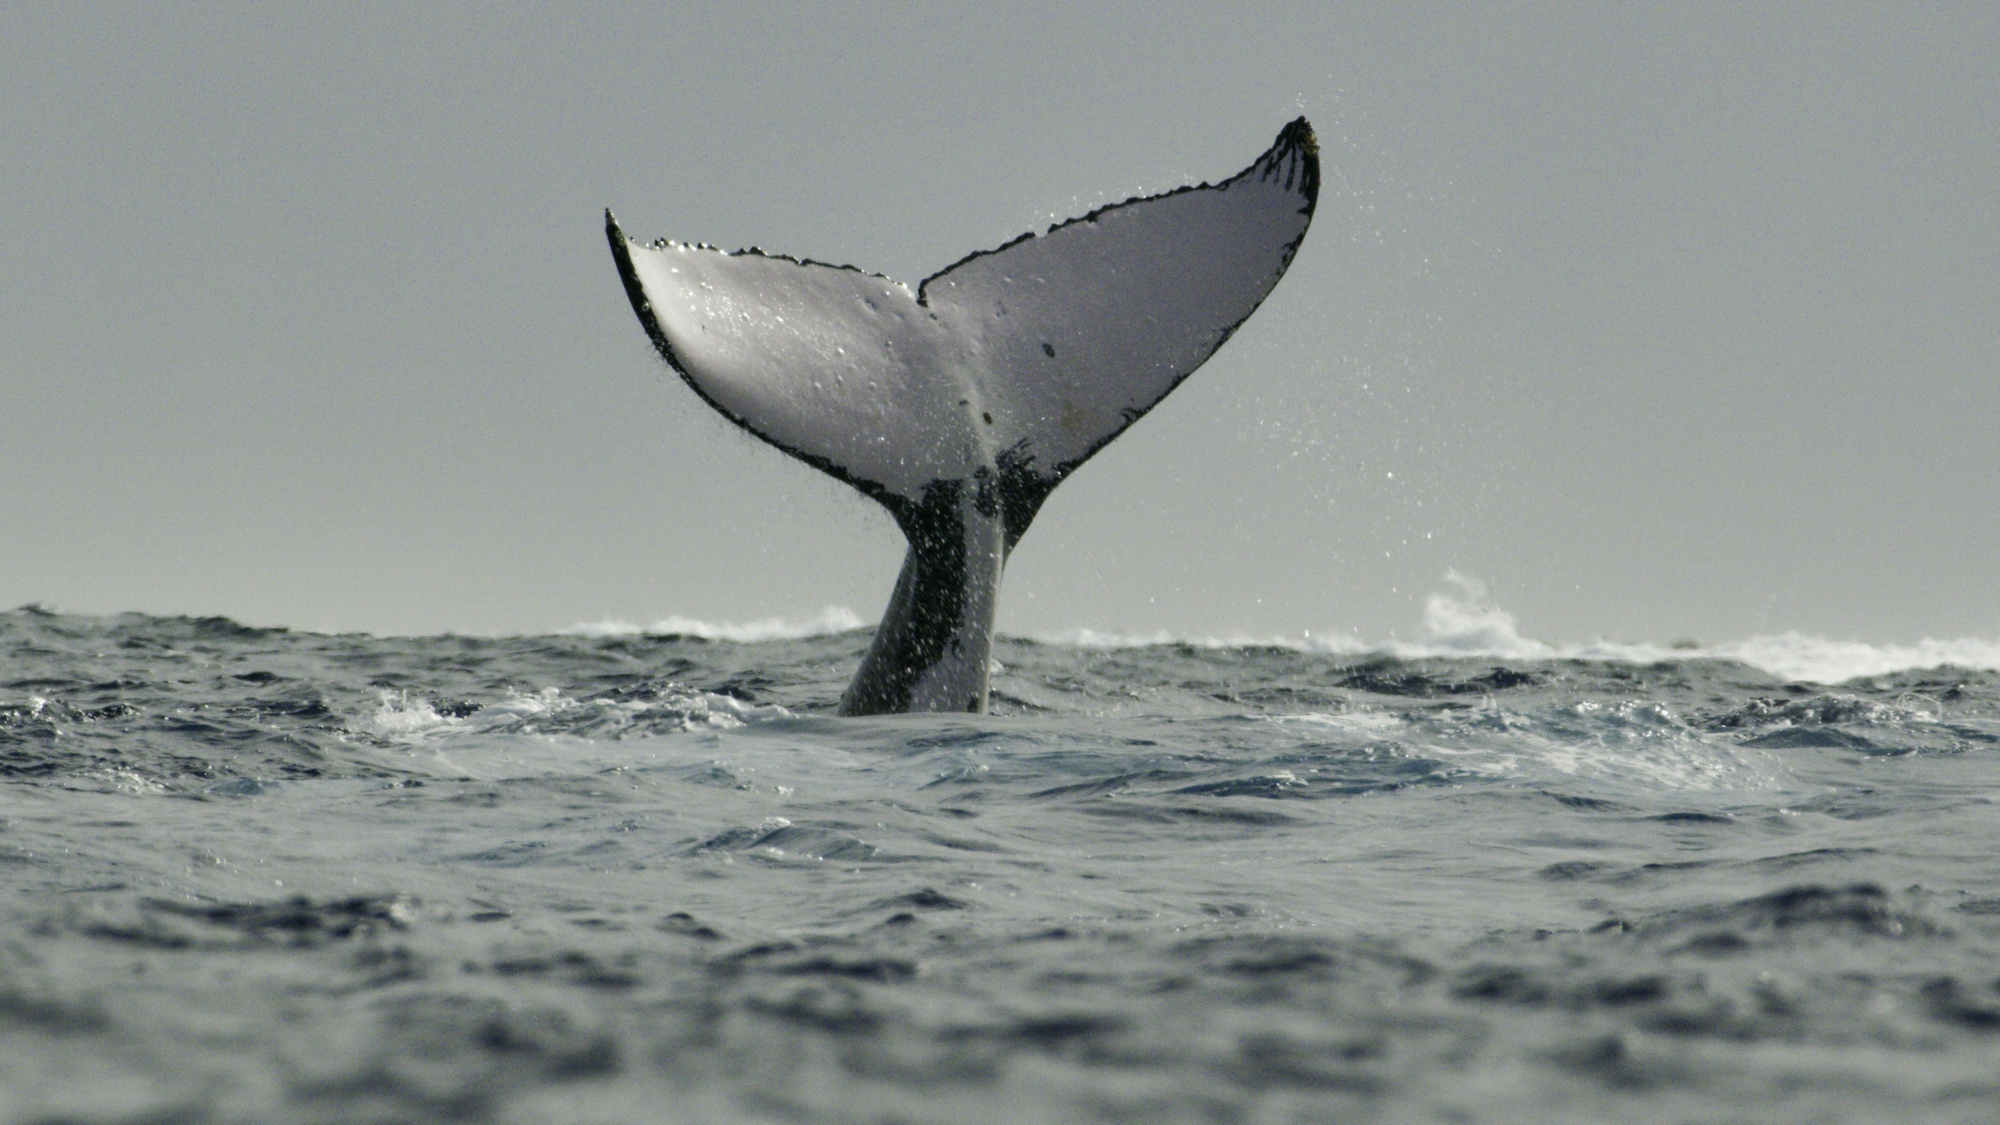 The humpback's tail - called a fluke - has patterns as unique as a human fingerprint. Scientists use them to identify individuals year after year. (National Geographic for Disney+/Hayes Baxley)